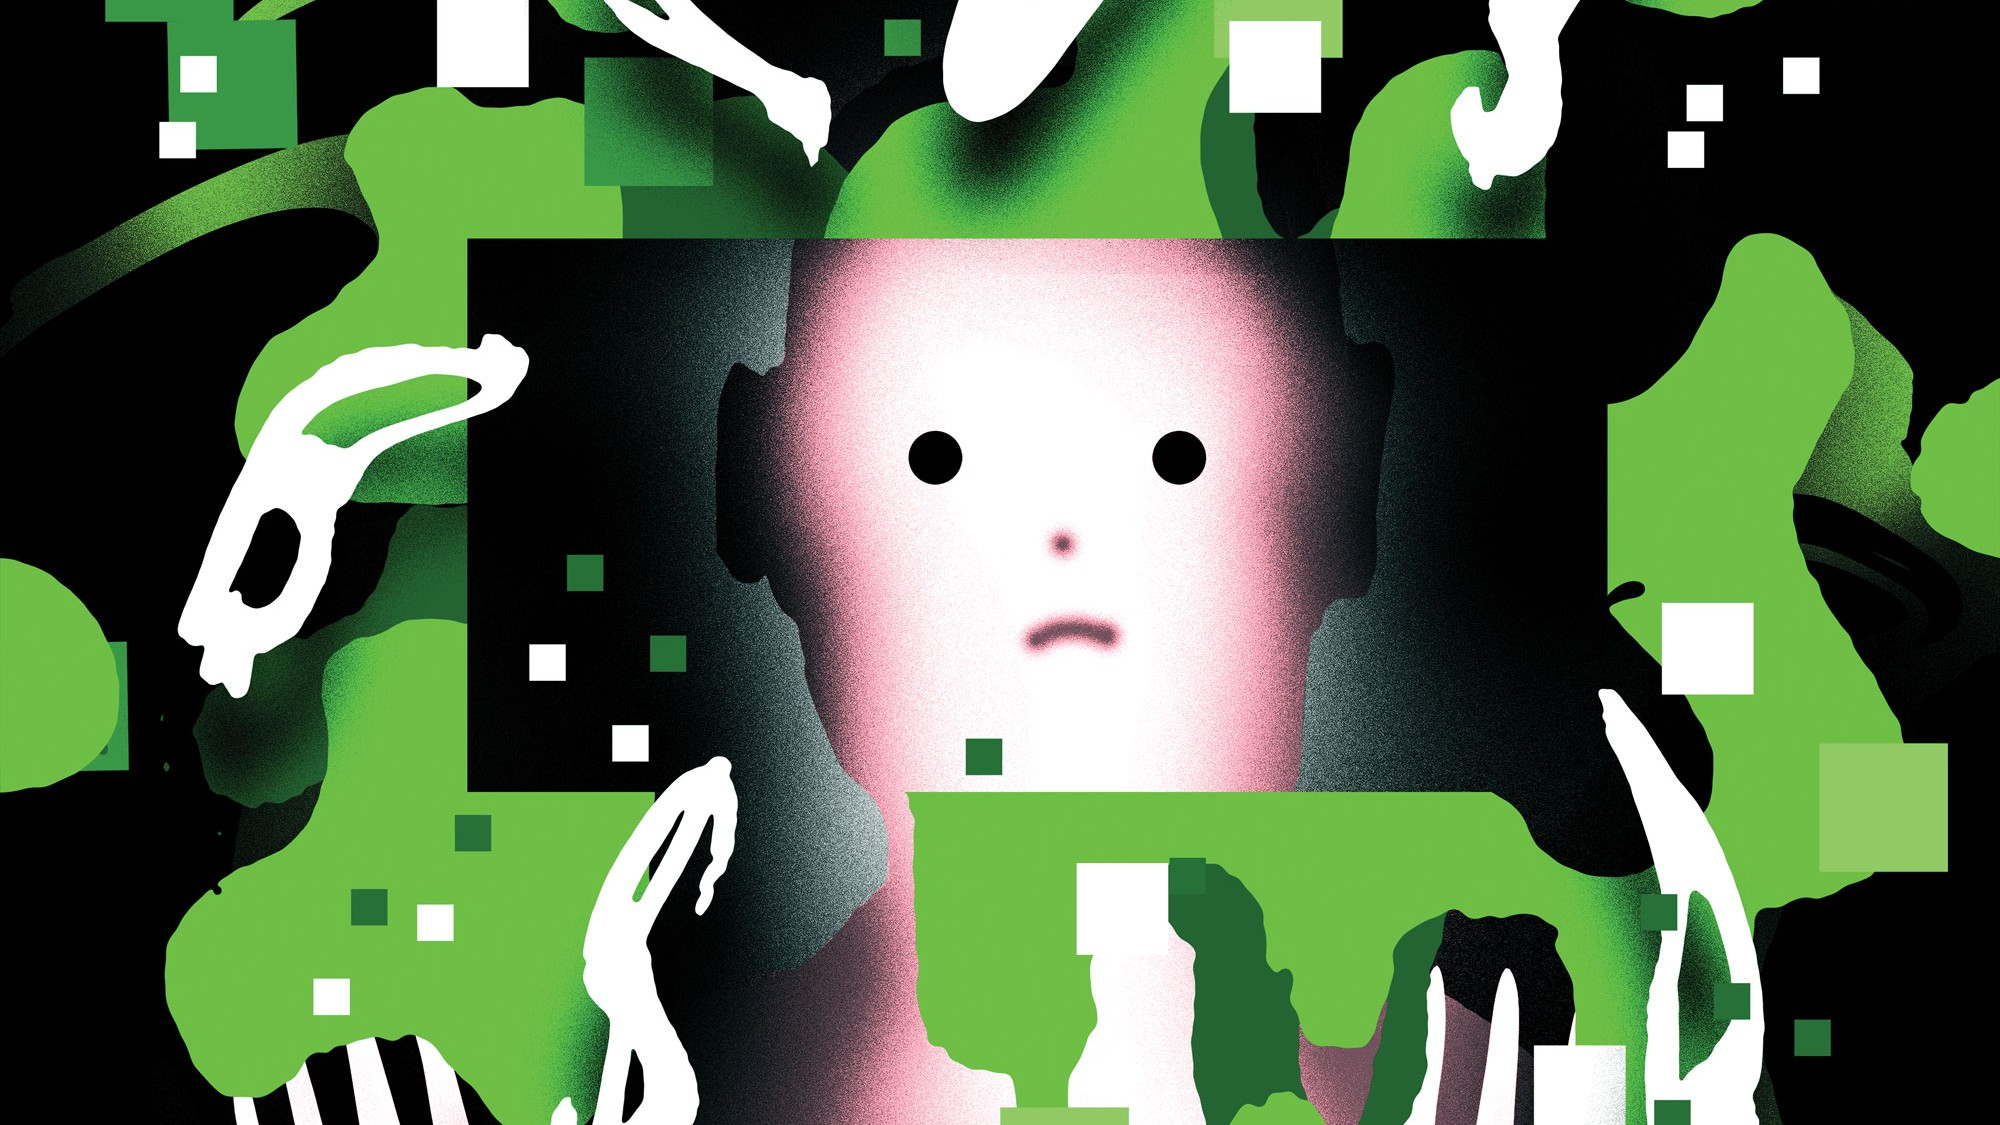 Bitcoin would be a calamity, not an economy - MIT Technology Review